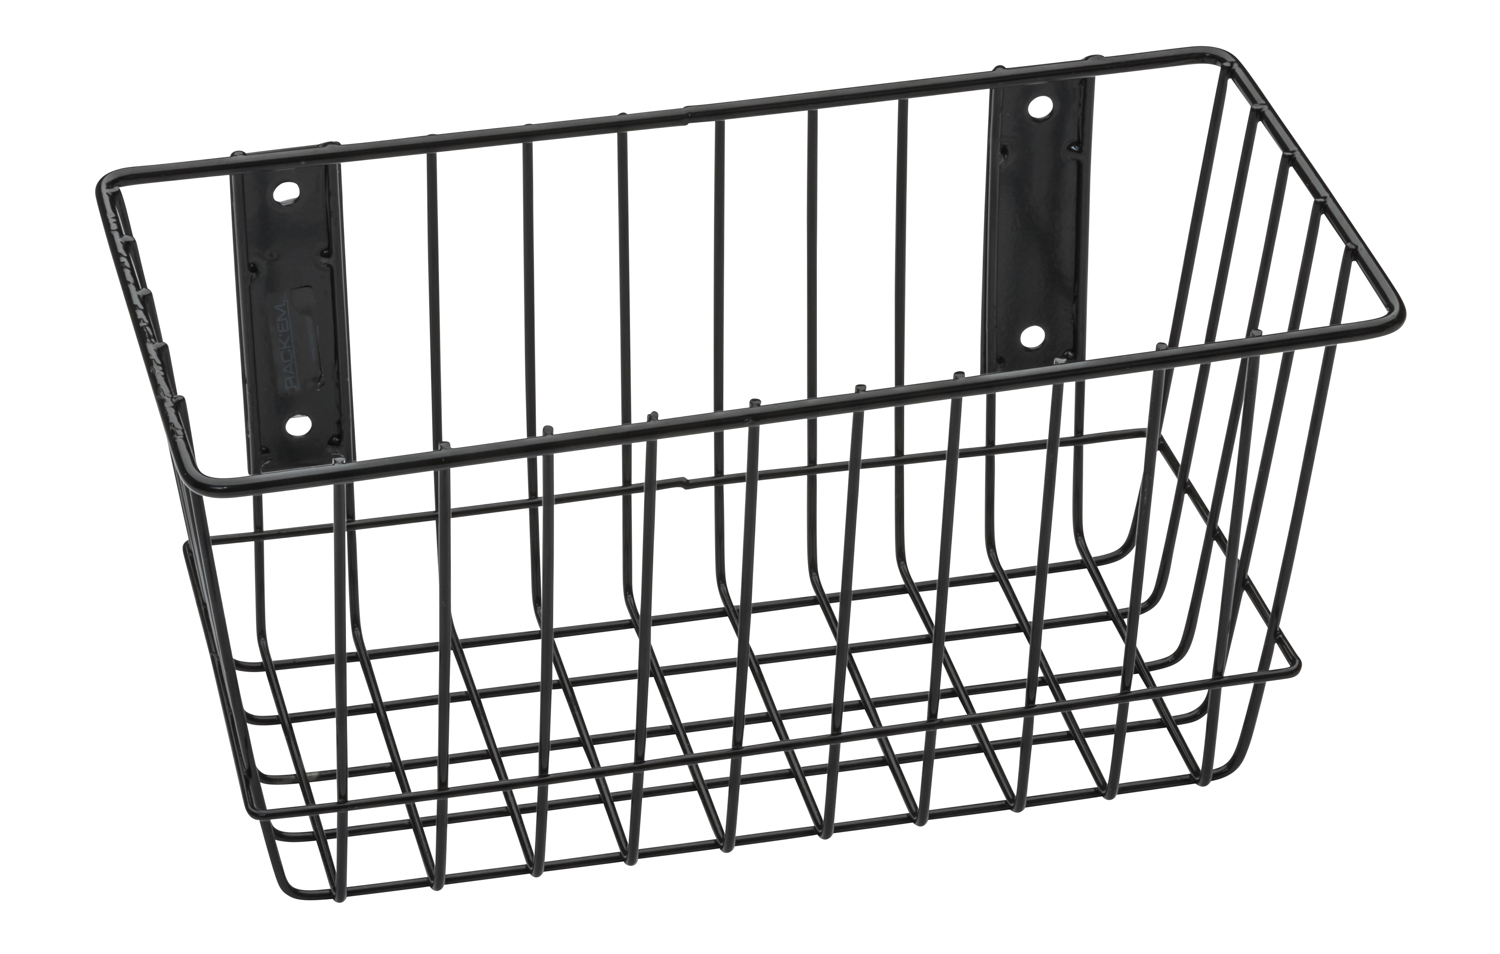 Universal Black Wire Basket For Your Storage And Organizational Needs  (9081 B)